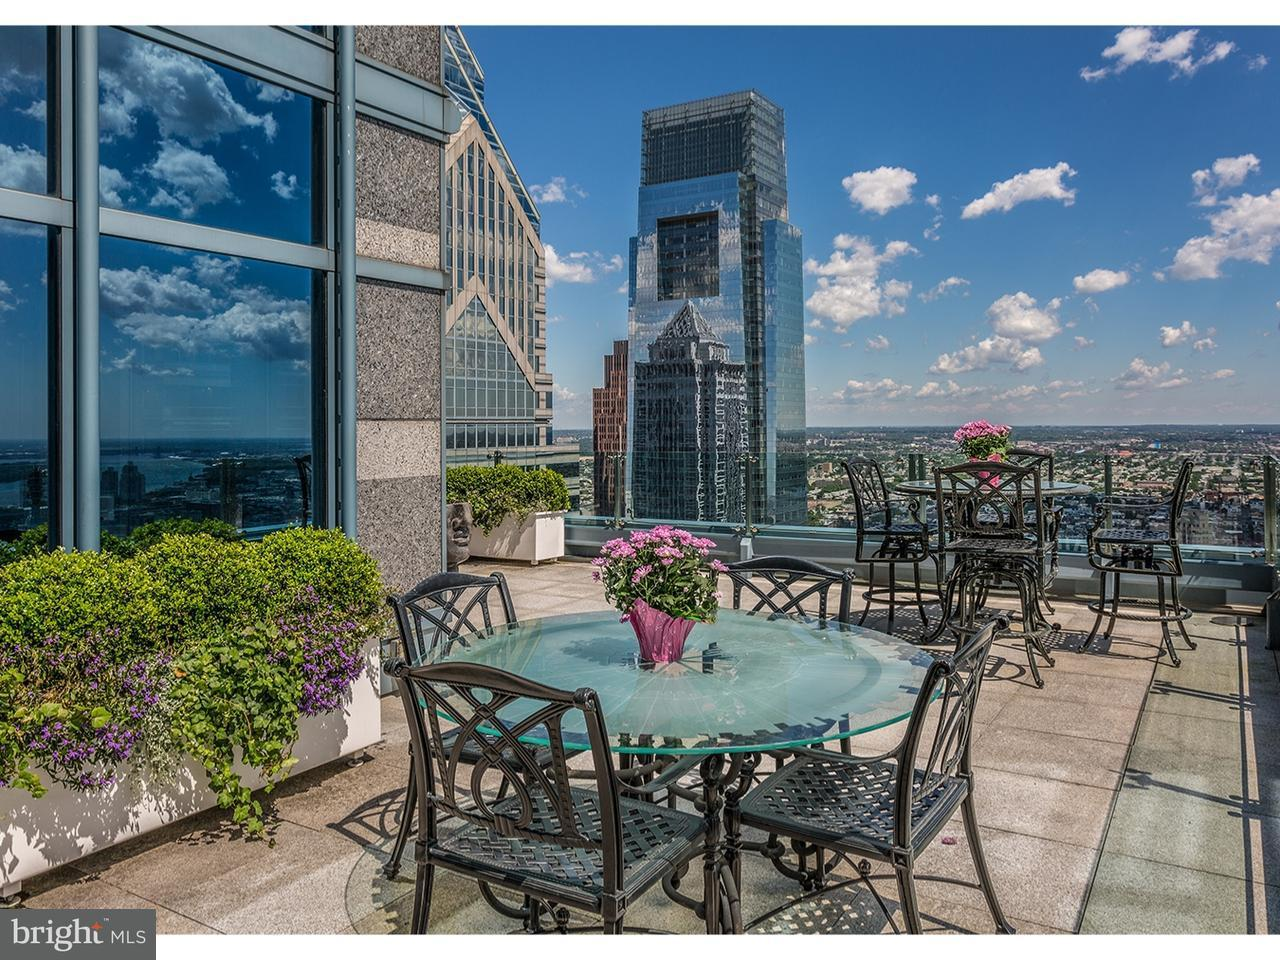 Condominium for Sale at 50 S 16TH ST #4604 Philadelphia, Pennsylvania 19102 United States